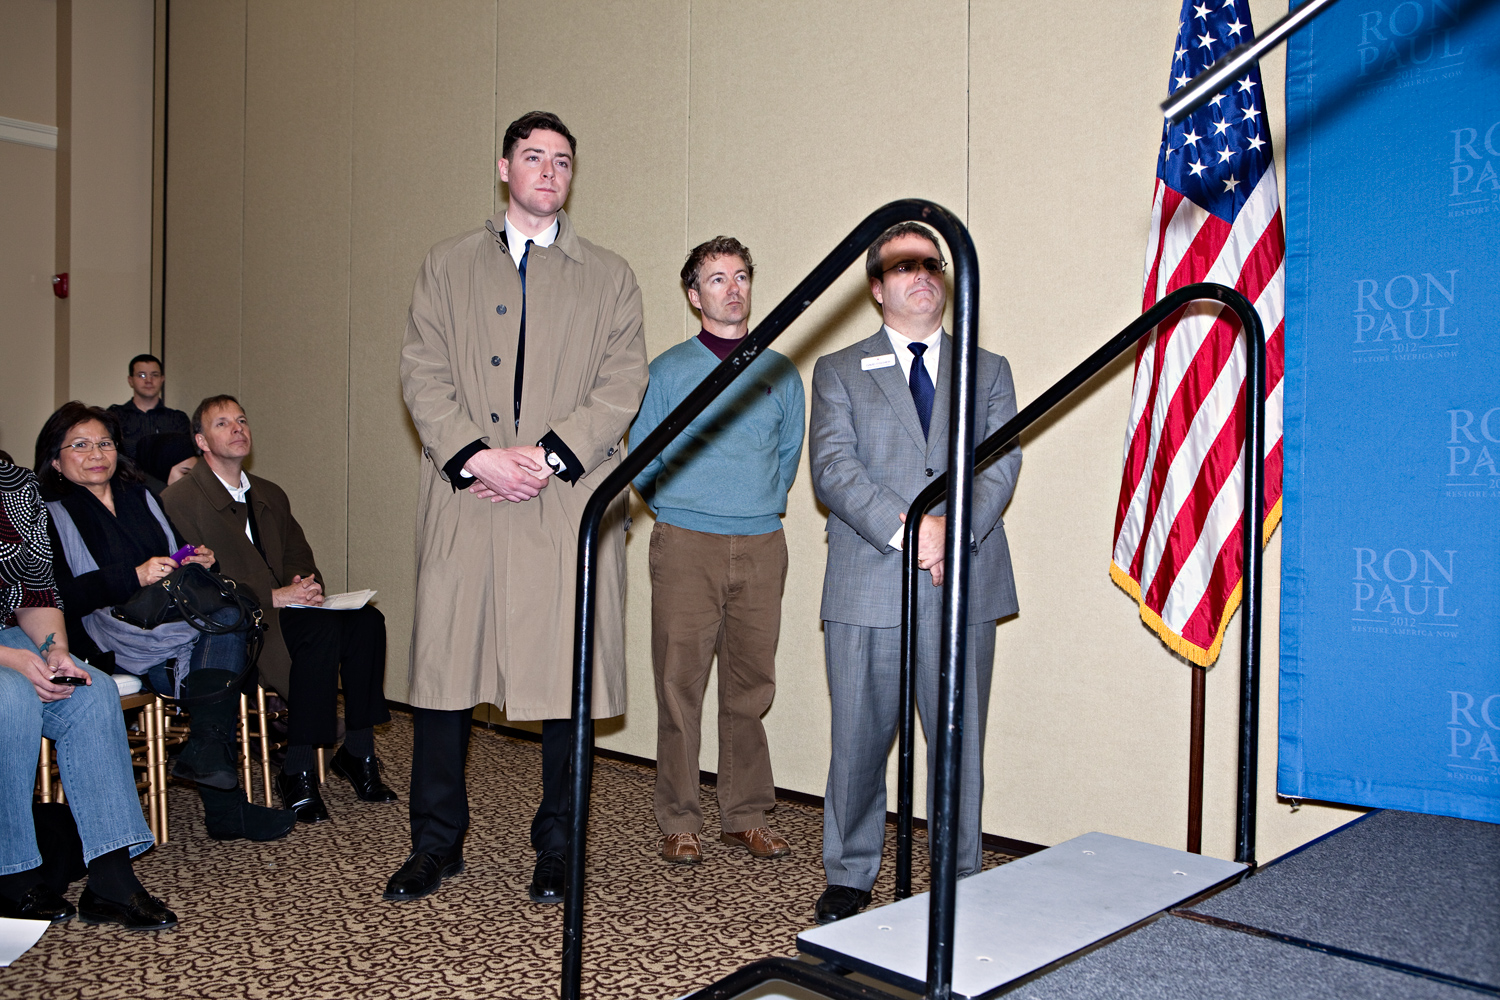 Rand Paul (center) listens to his father Ron Paul at a campaign event in Cedar Falls, Iowa on January 2, 2012.